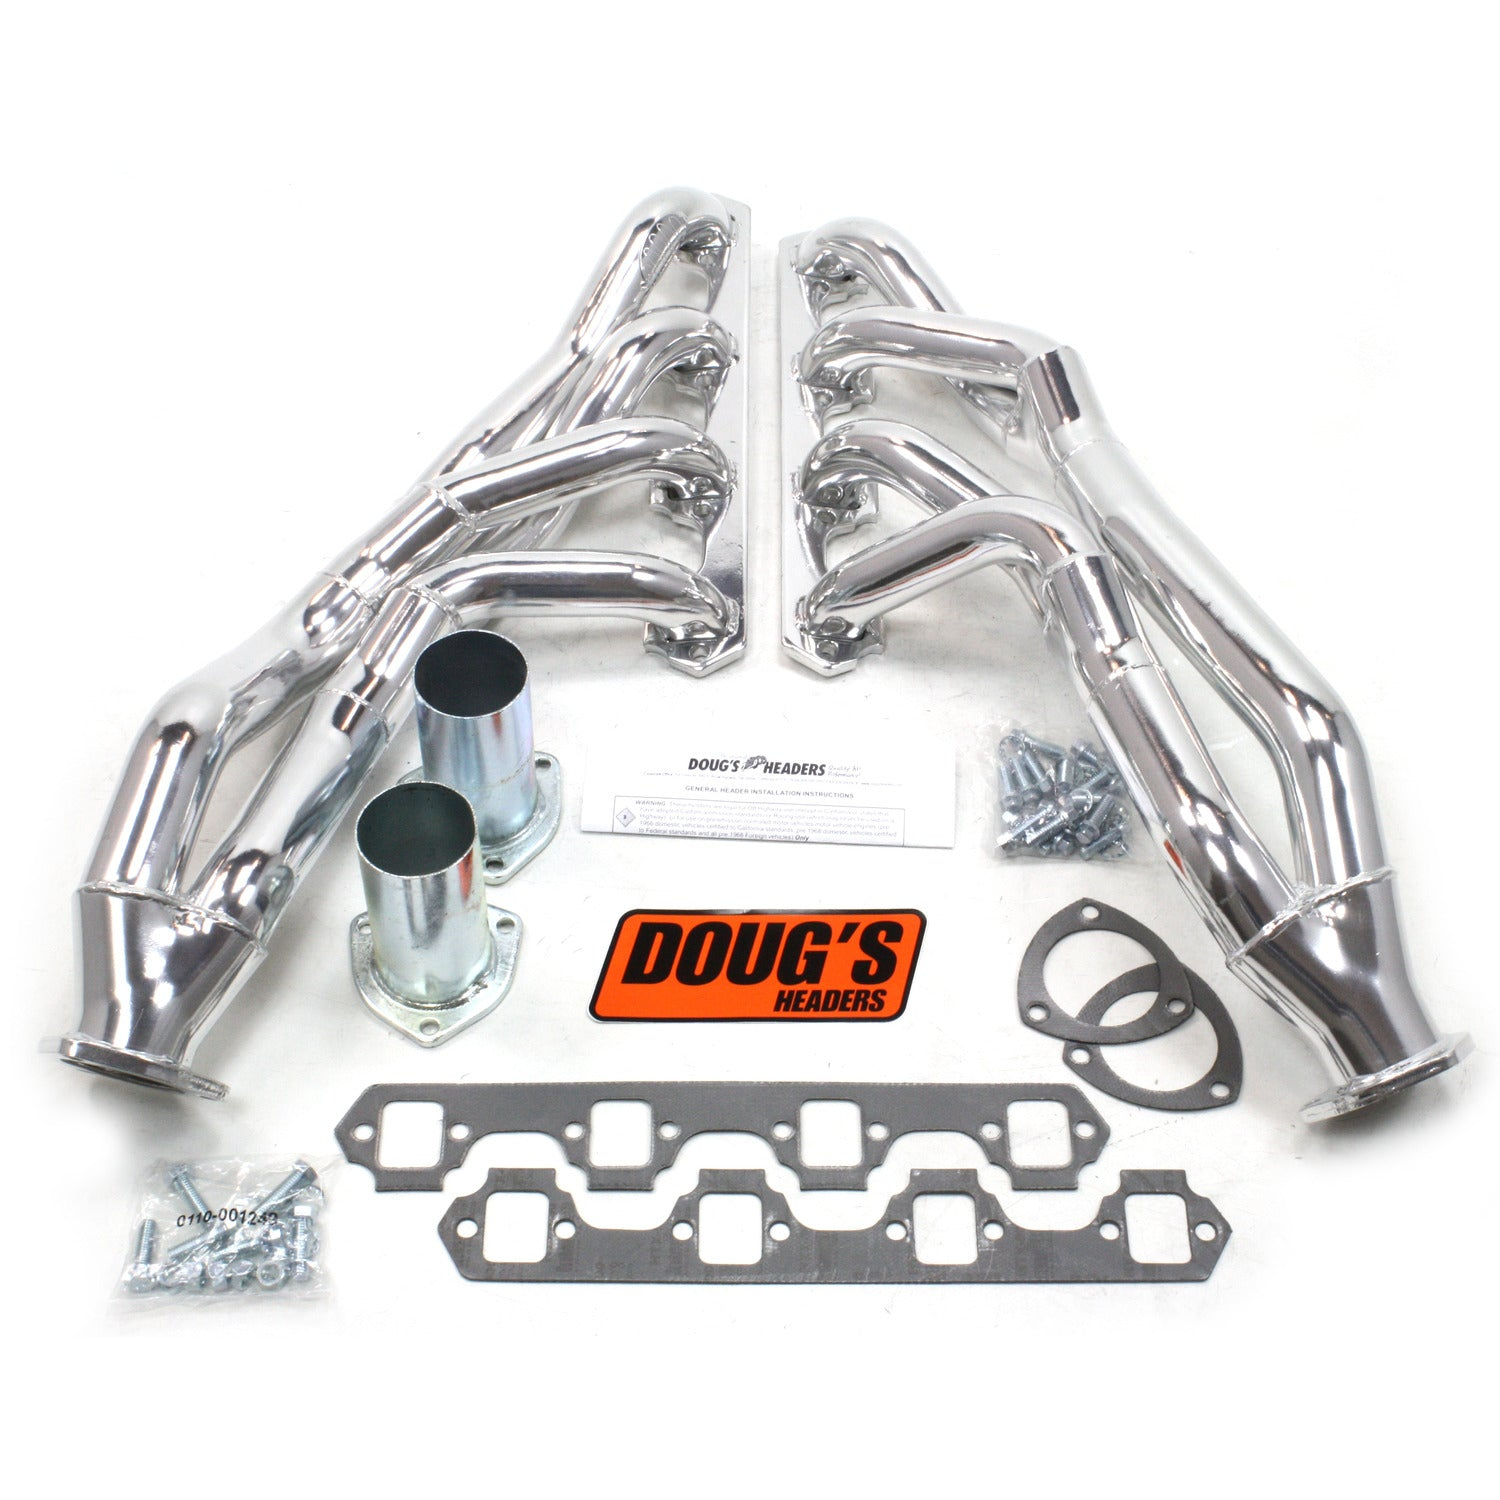 "Doug's Headers D690YA 1 5/8"" Tri-Y Header Ford Mustang Small Block Ford 64-70 Metallic Ceramic Coating"